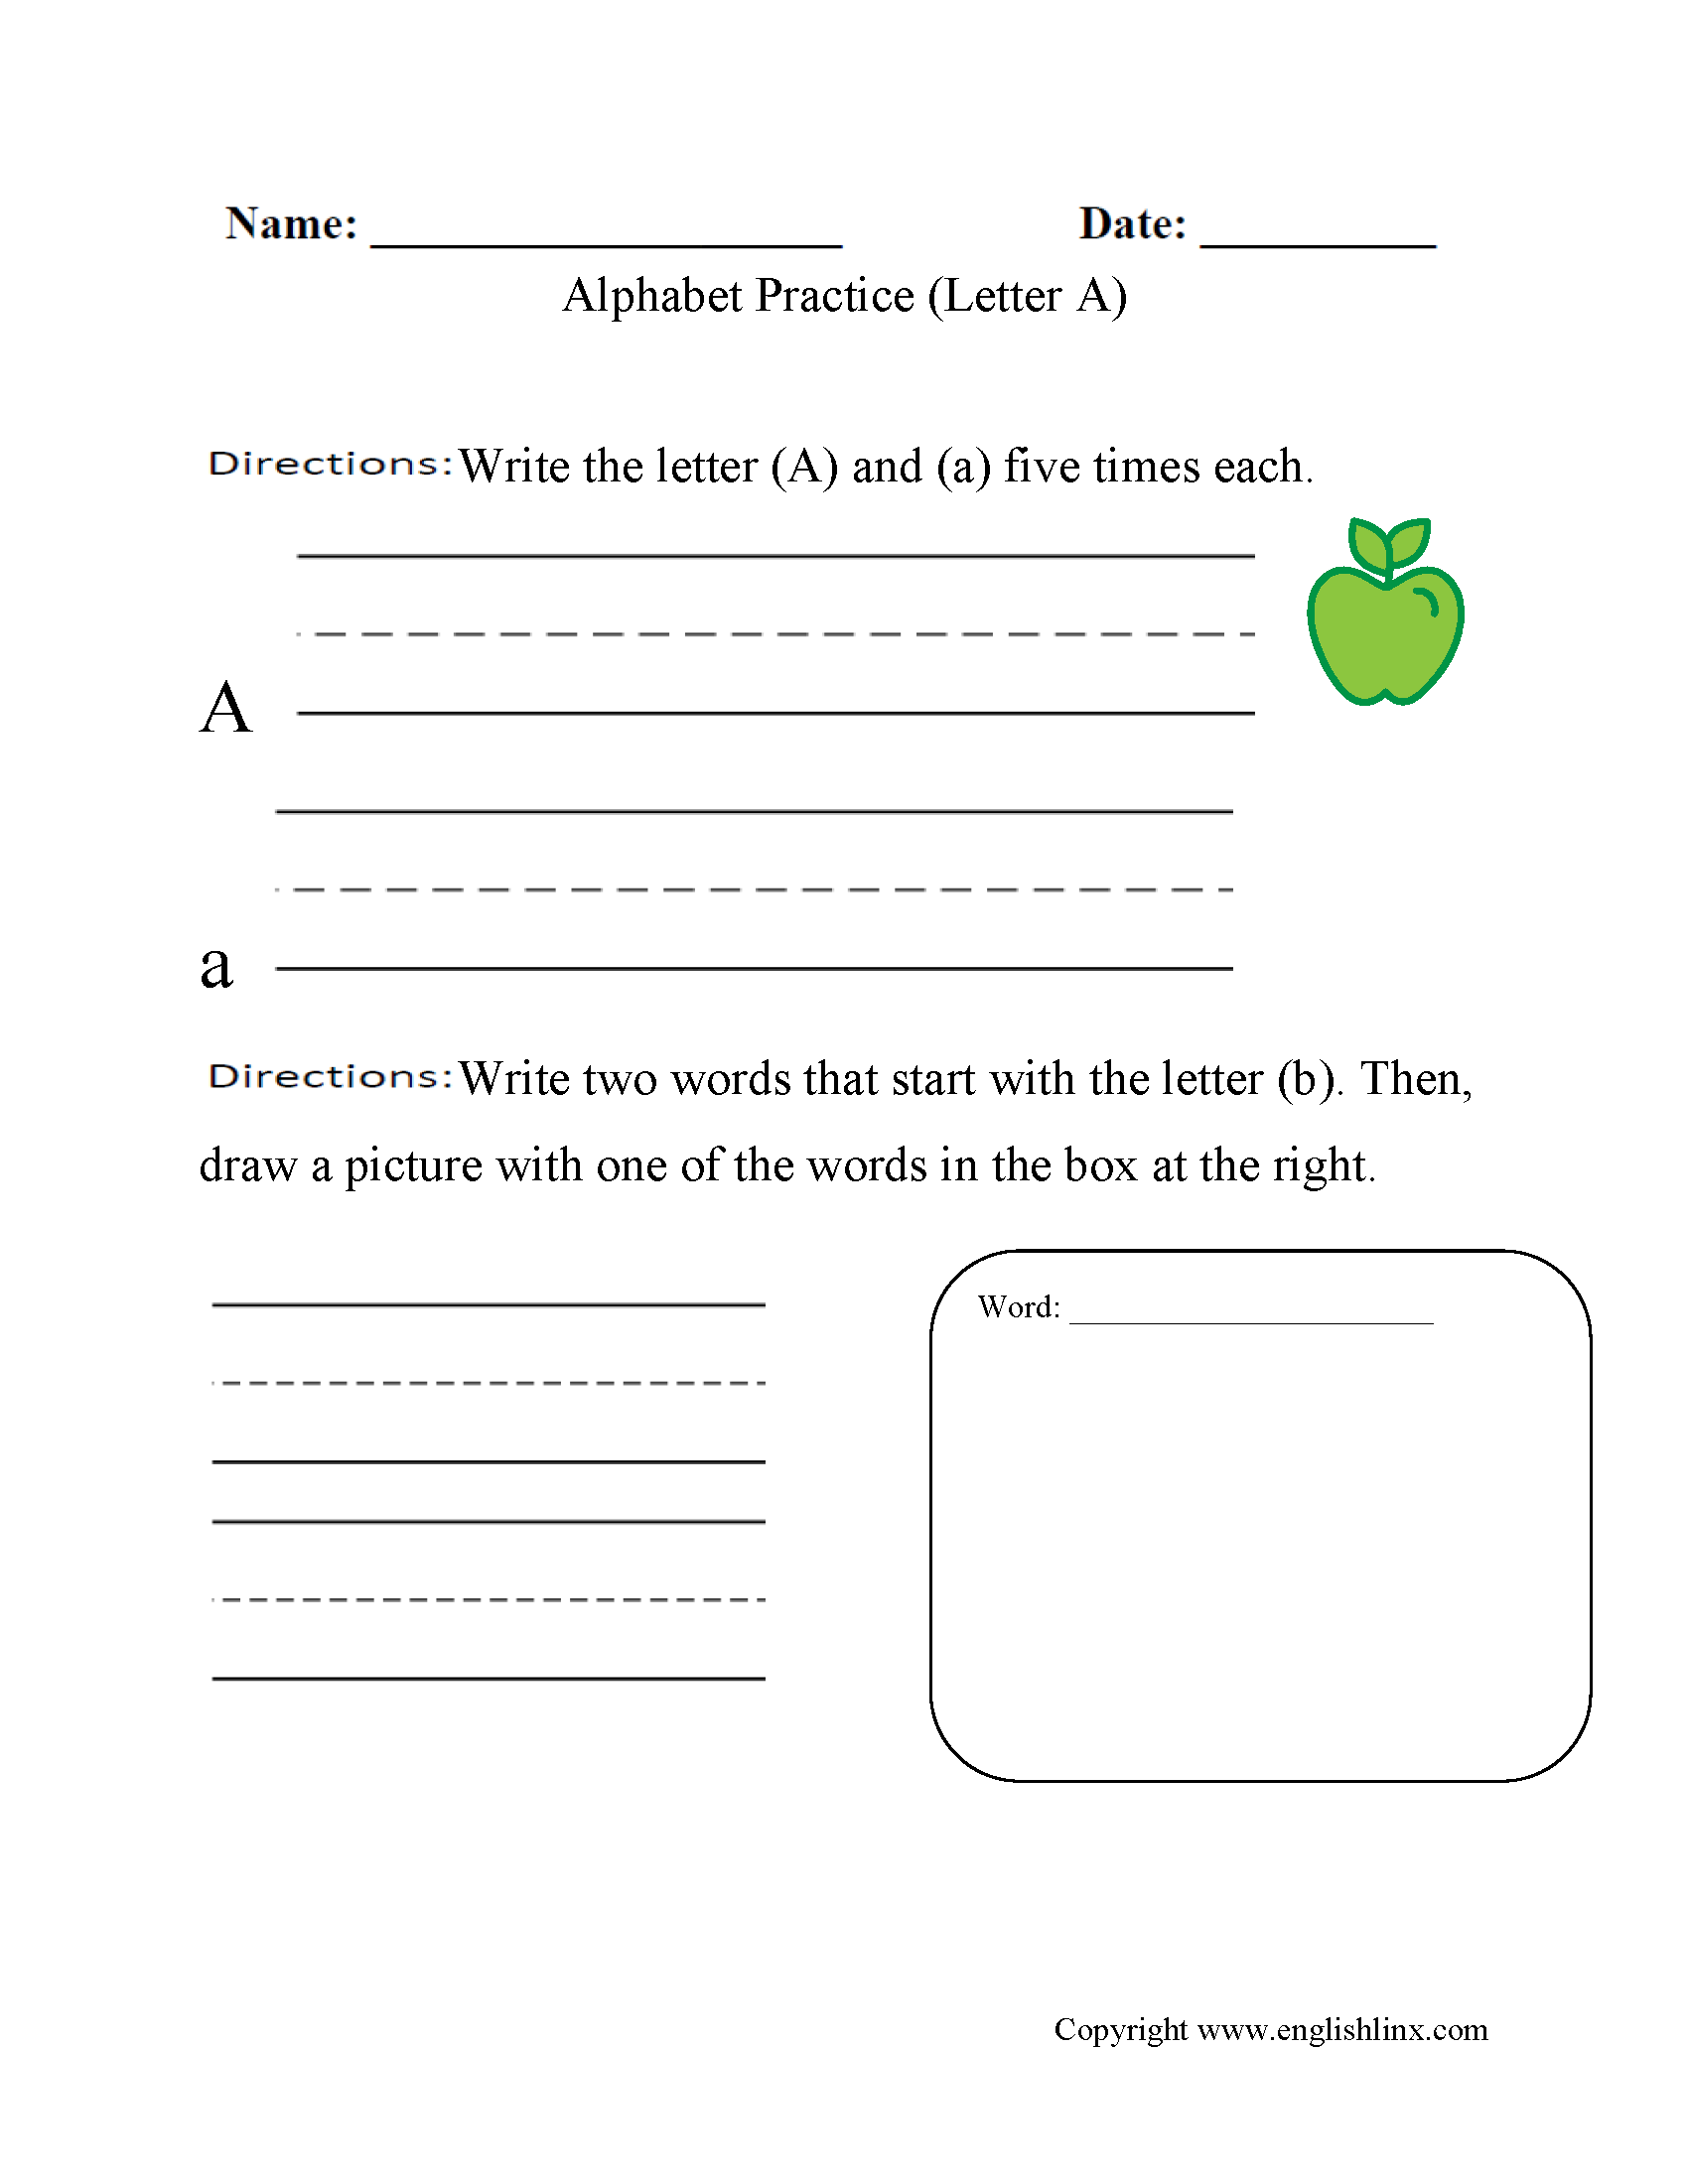 letter a worksheets inspirational letter a worksheets cover letter examples 3020